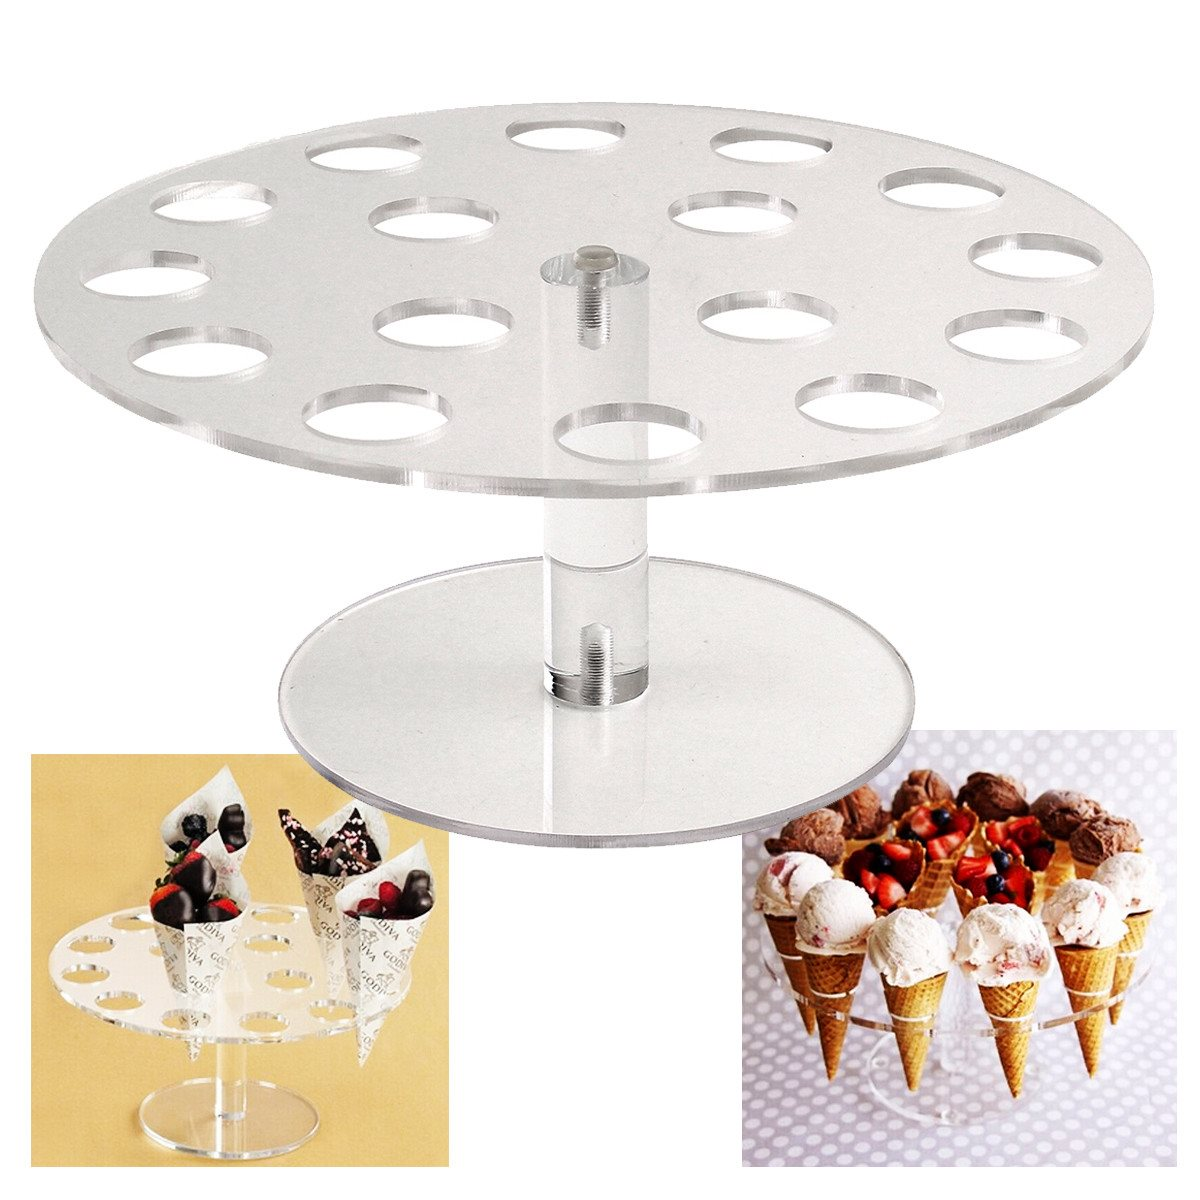 how to make ice cream cone holder stand